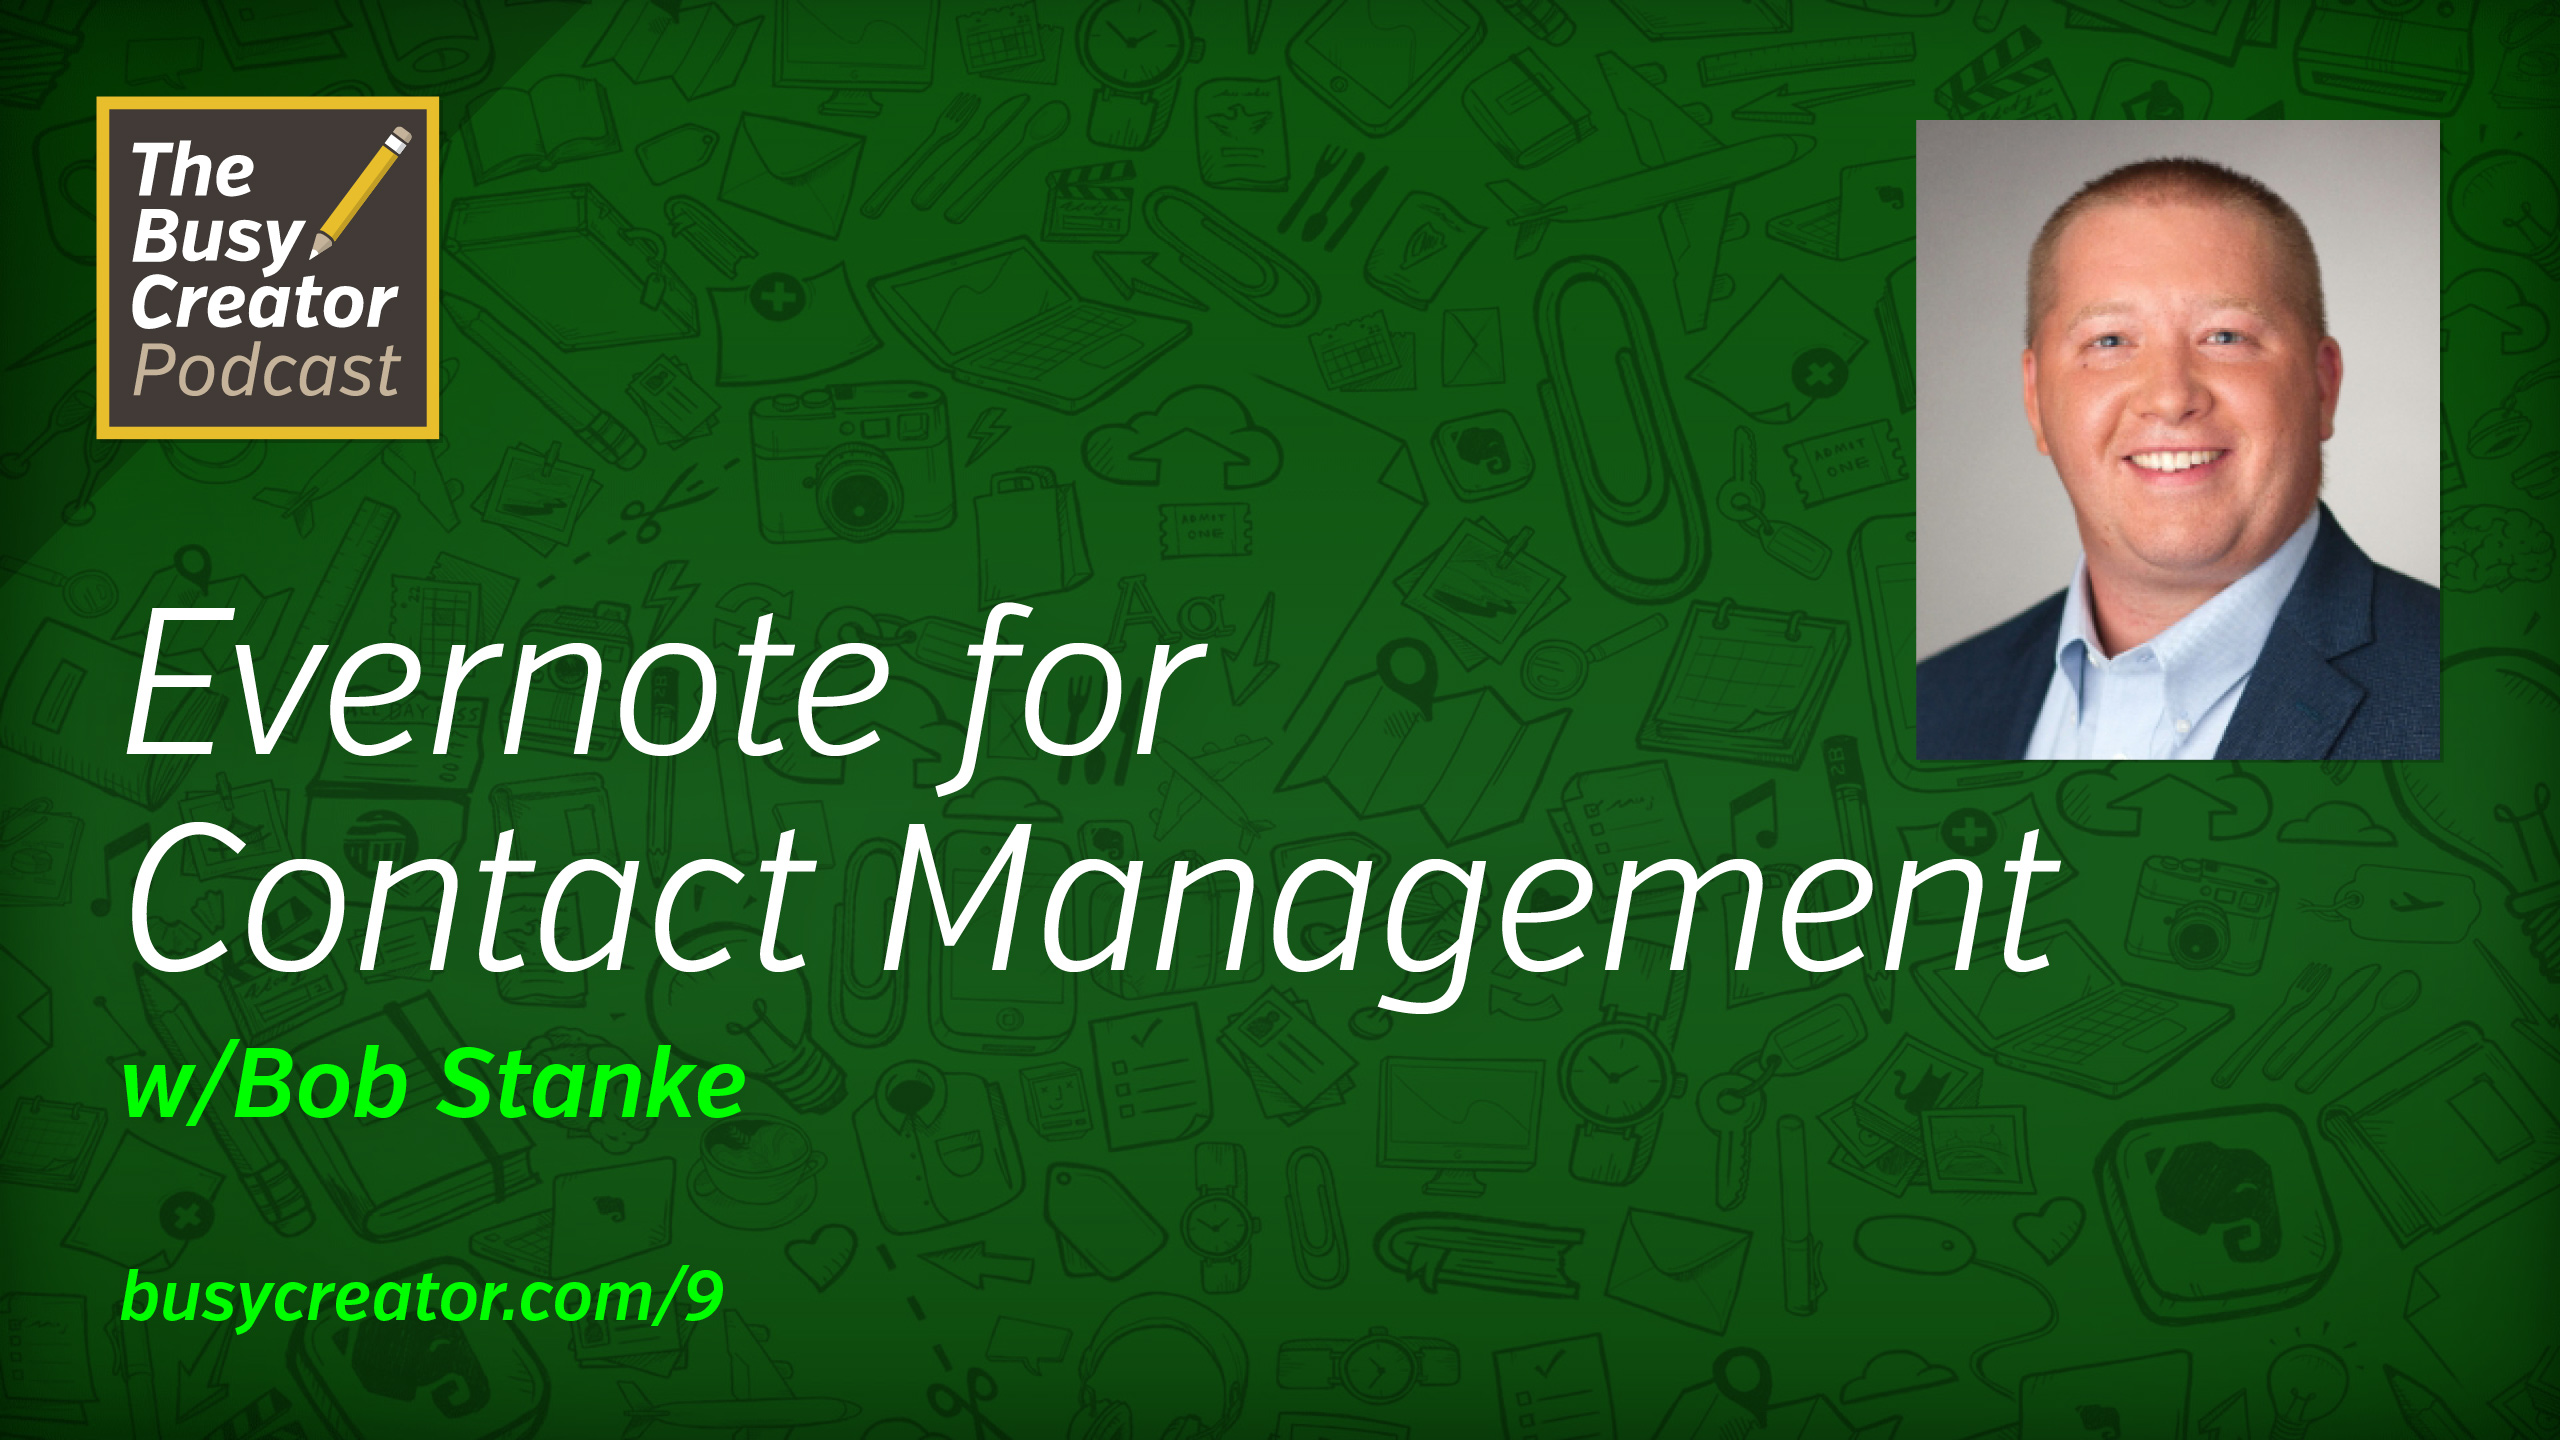 Noted: Using Evernote for Contact Management with Digitial Media Director Bob Stanke